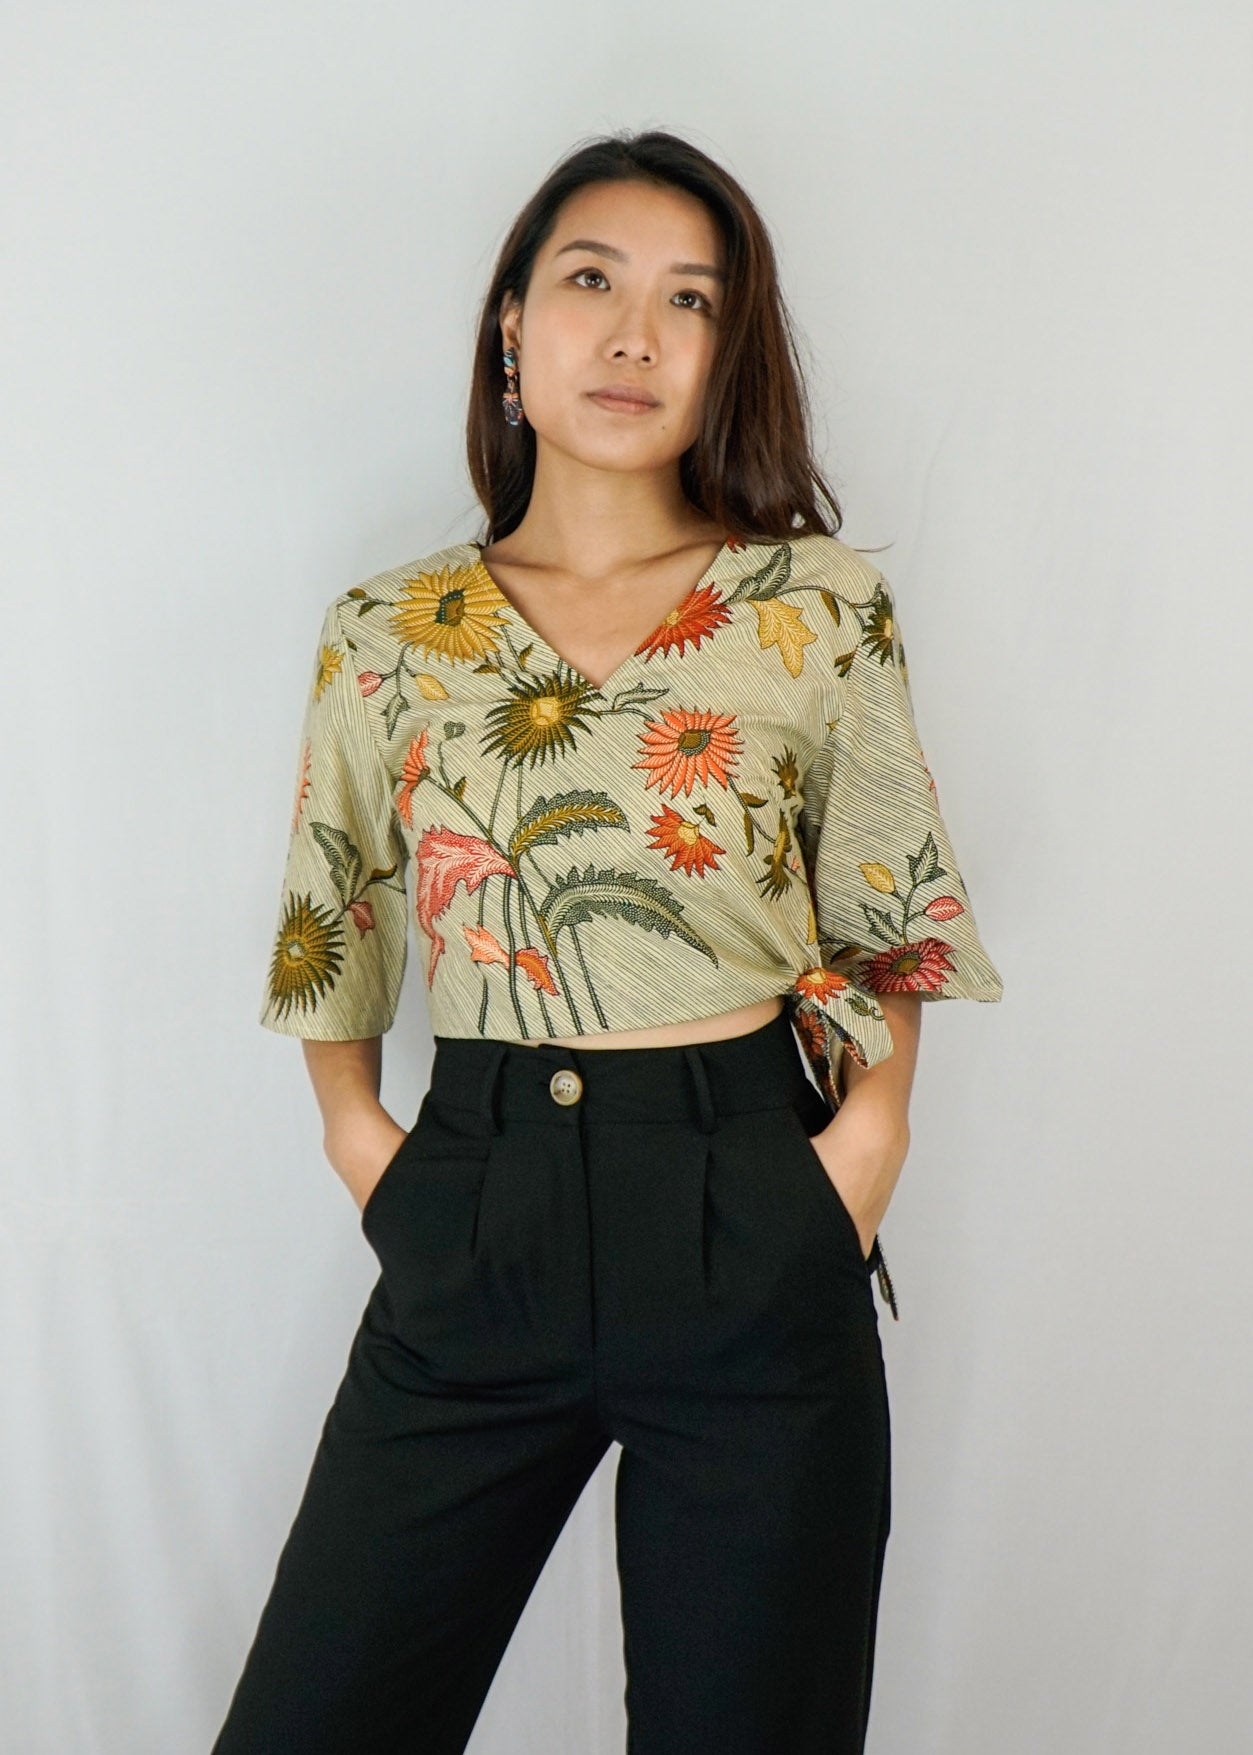 Tracy Flare Sleeves Top in Muted Floral